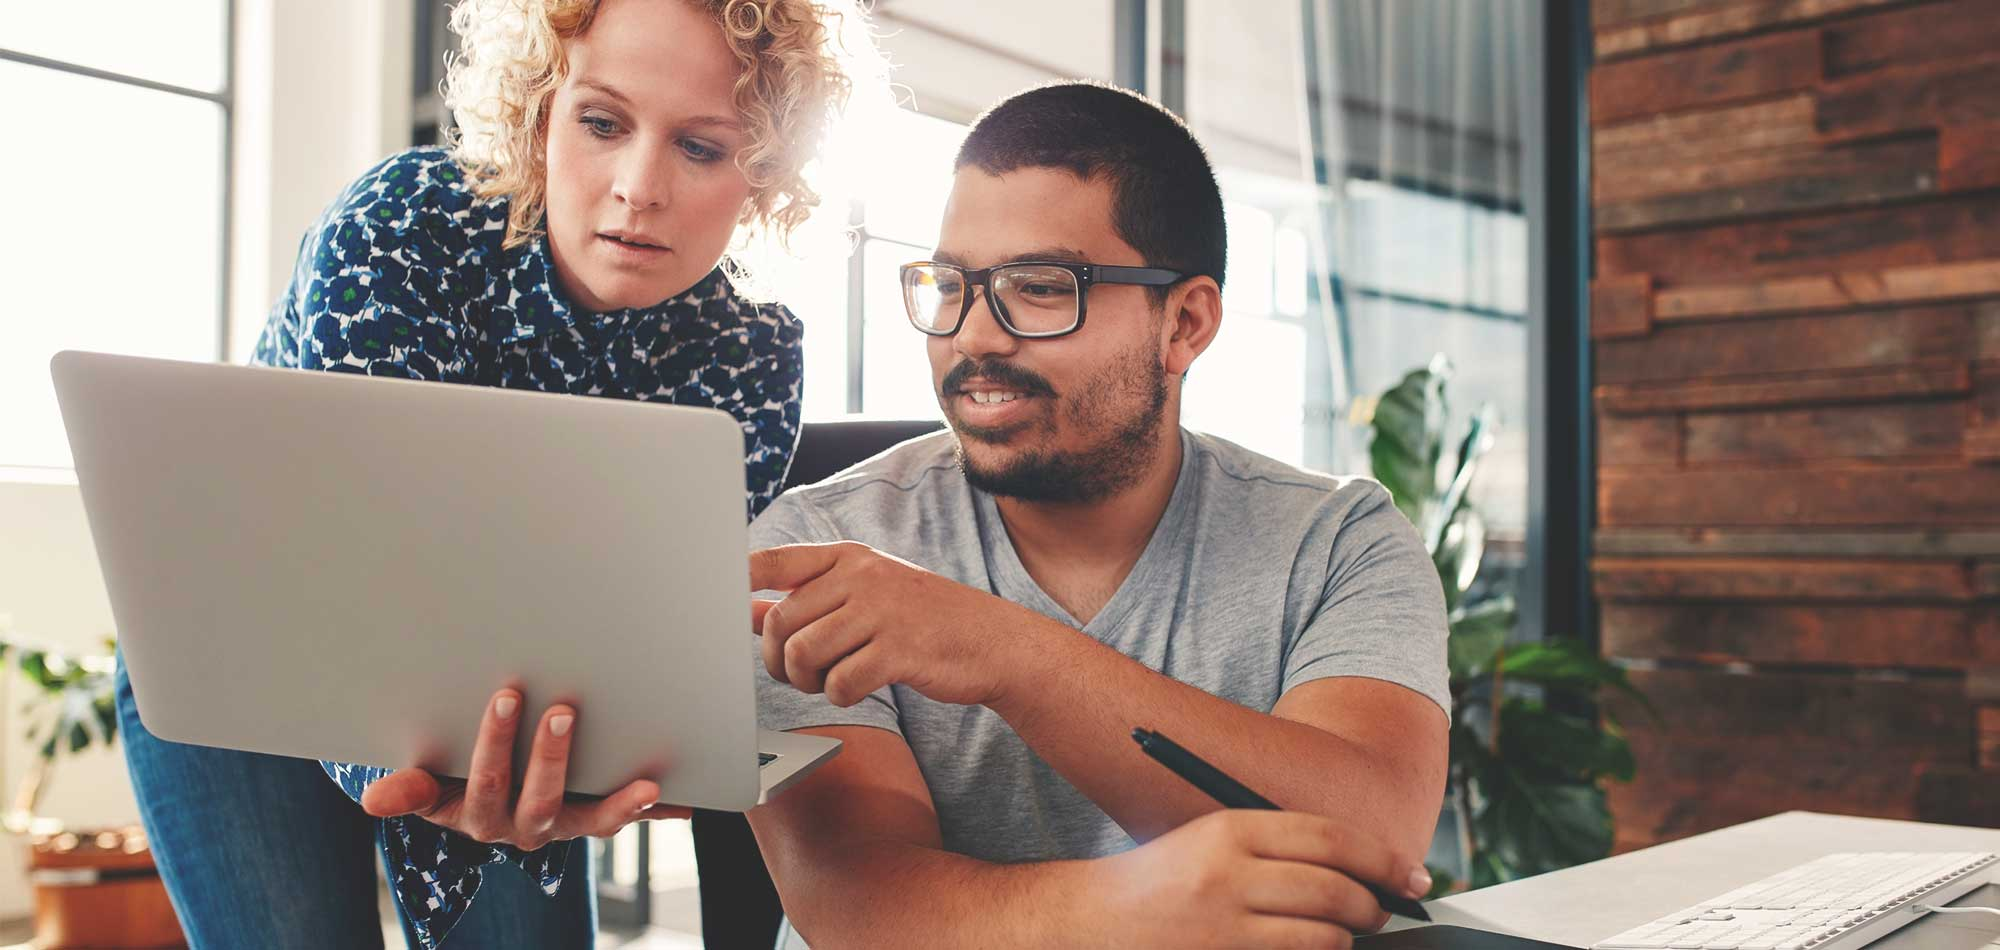 How to Improve the User Experience: 3 Essential WiFi Planning Tips